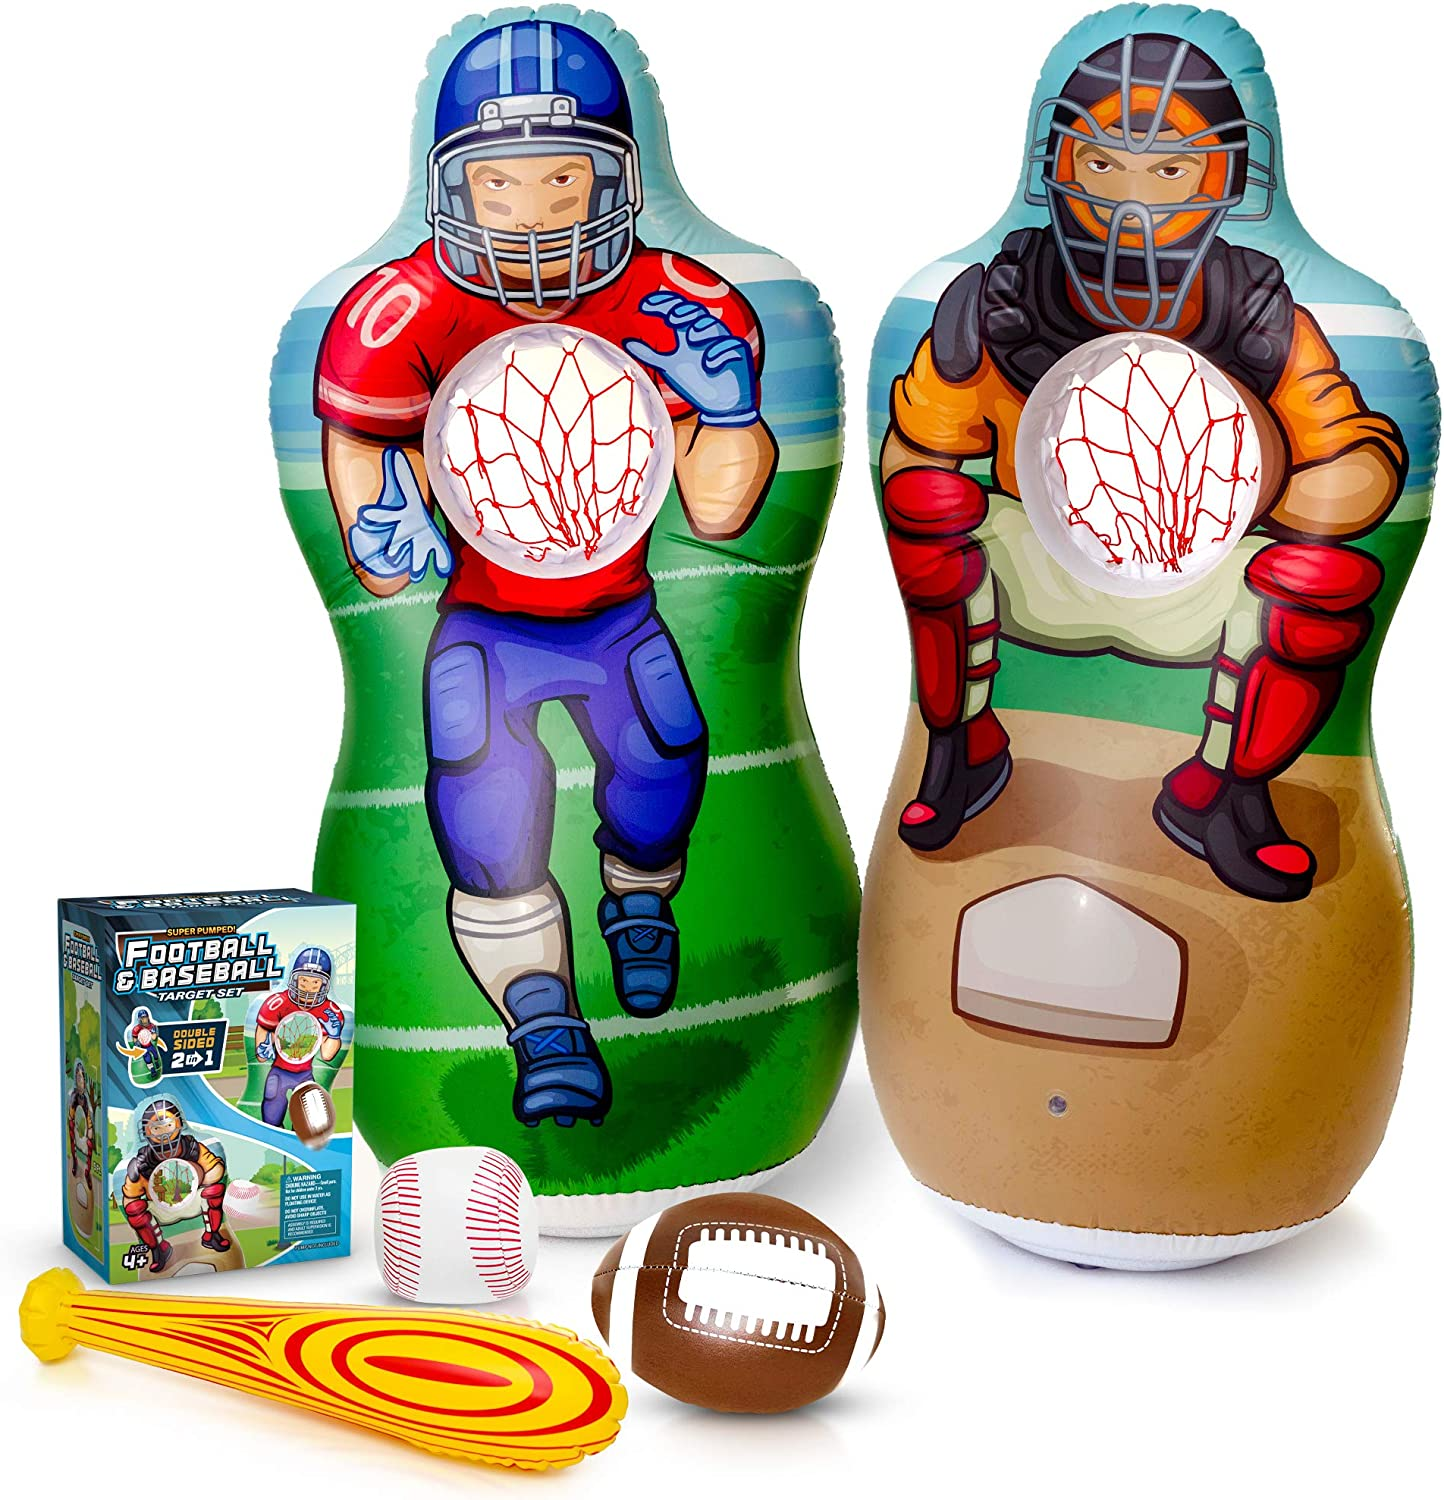 Super Pumped! Inflatable 2-In-1 Baseball & Football Target Set   Blow Up Toys with Soft Football, Baseball & Inflatable Bat   Fun Games for Indoor, Outdoor, Backyard & Party Favor   Inflates to 5 Feet